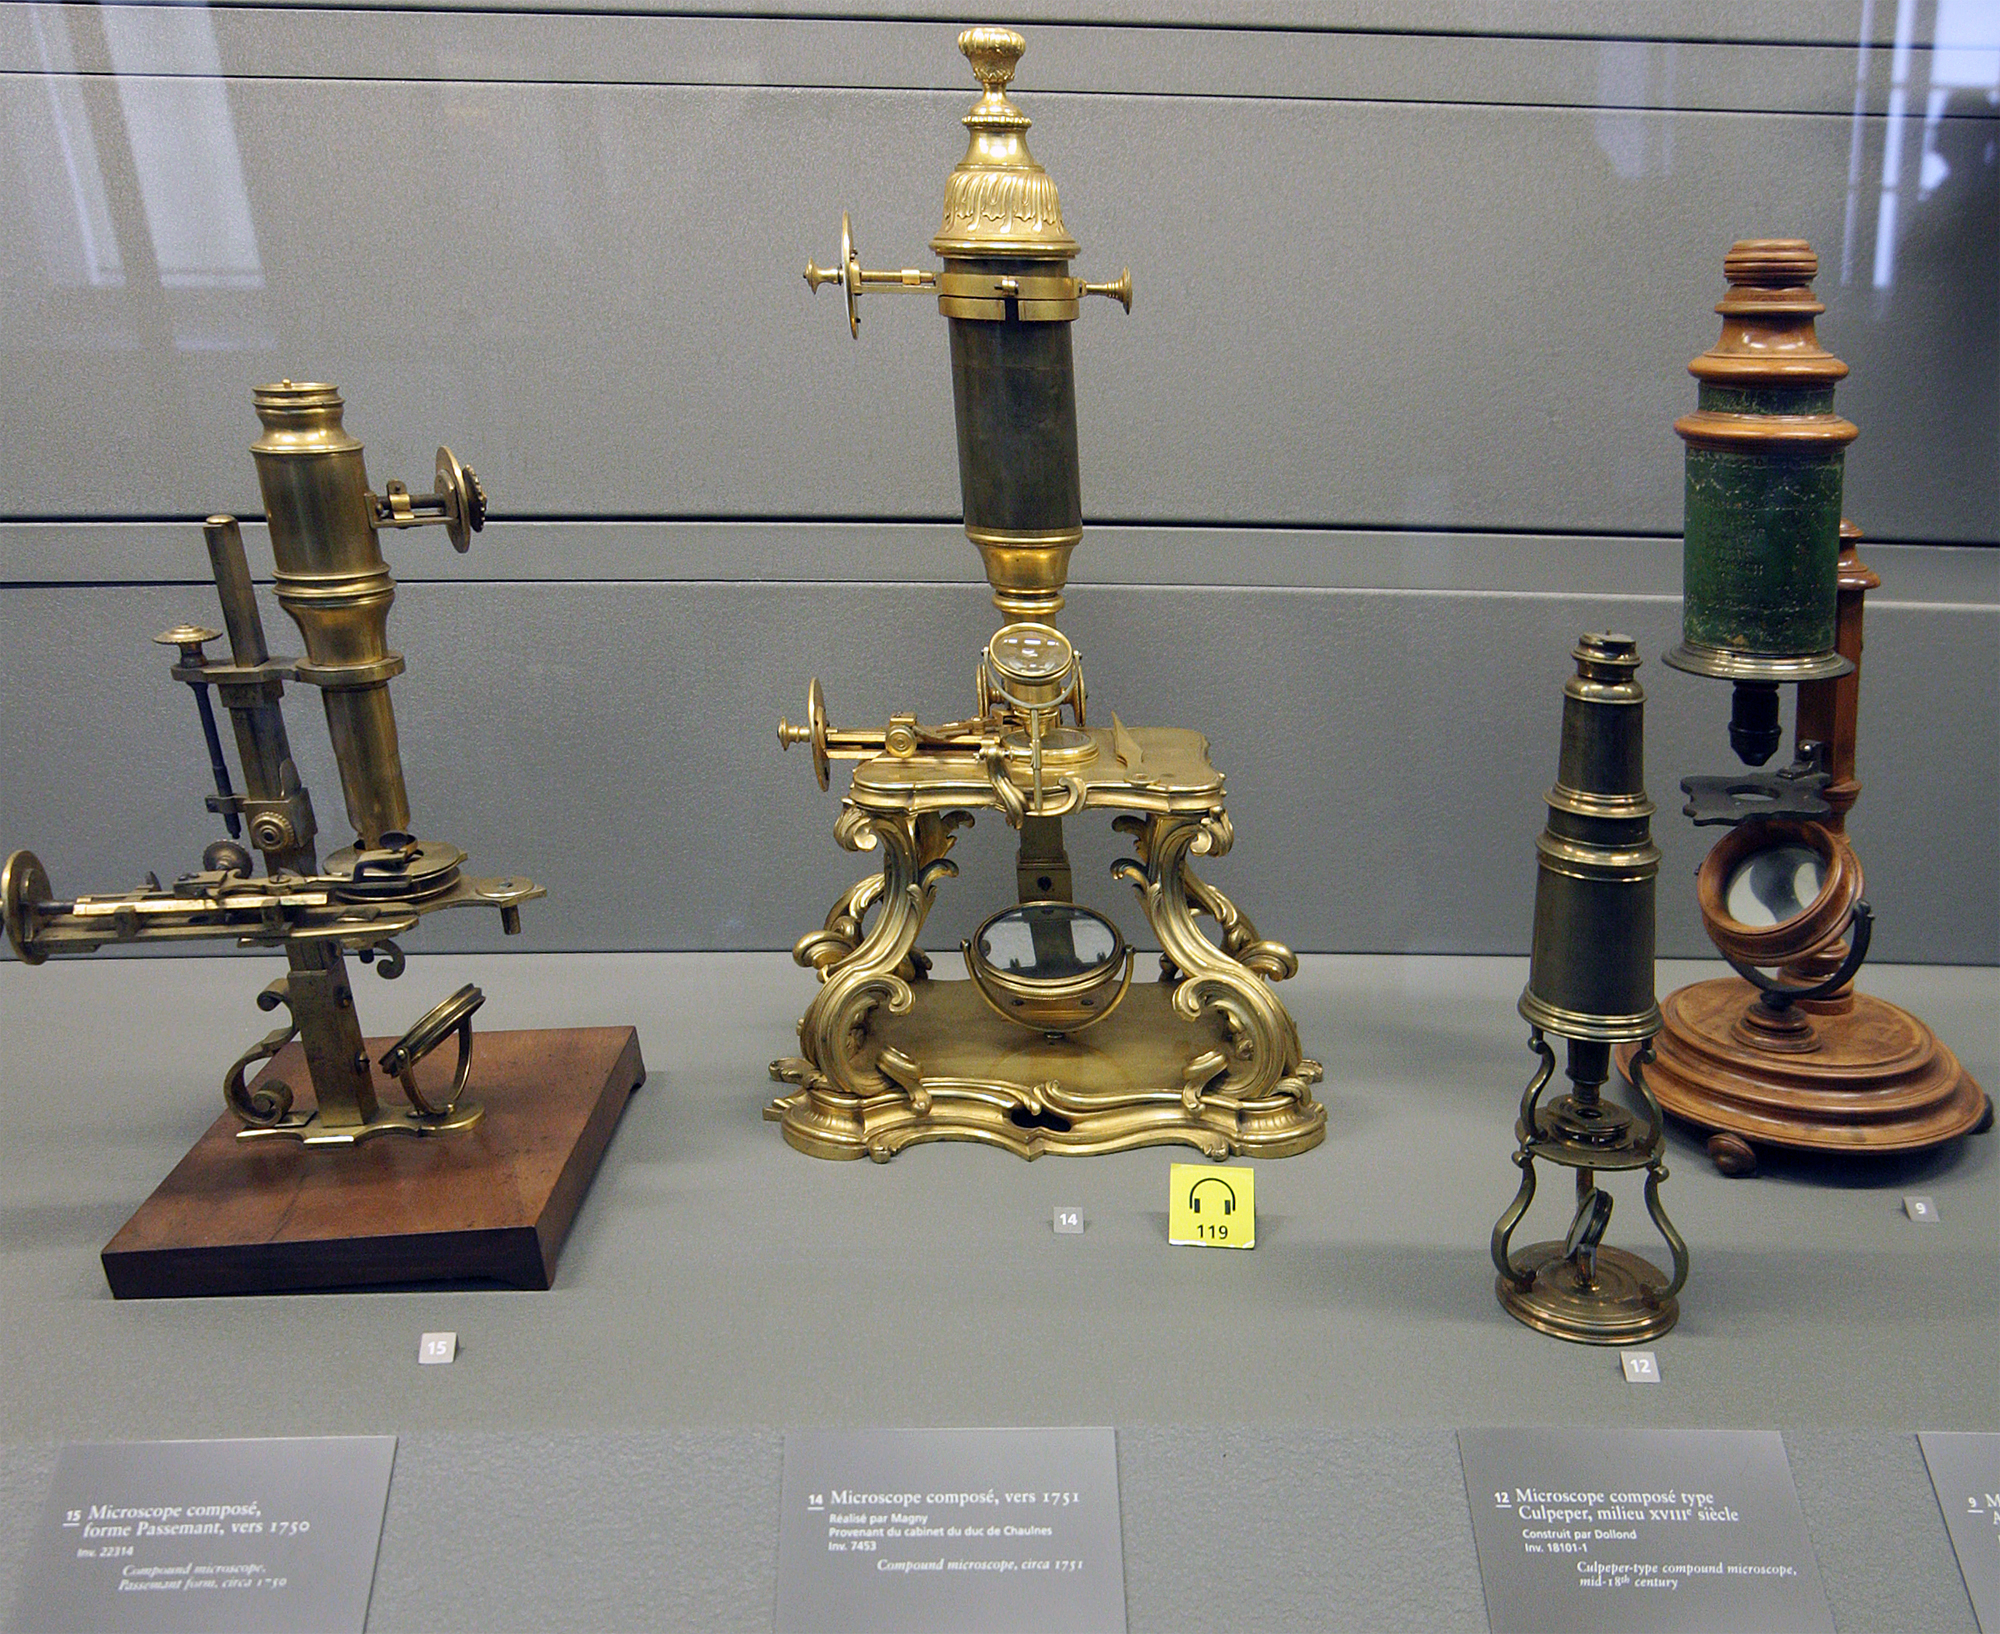 old-microscopes.jpg